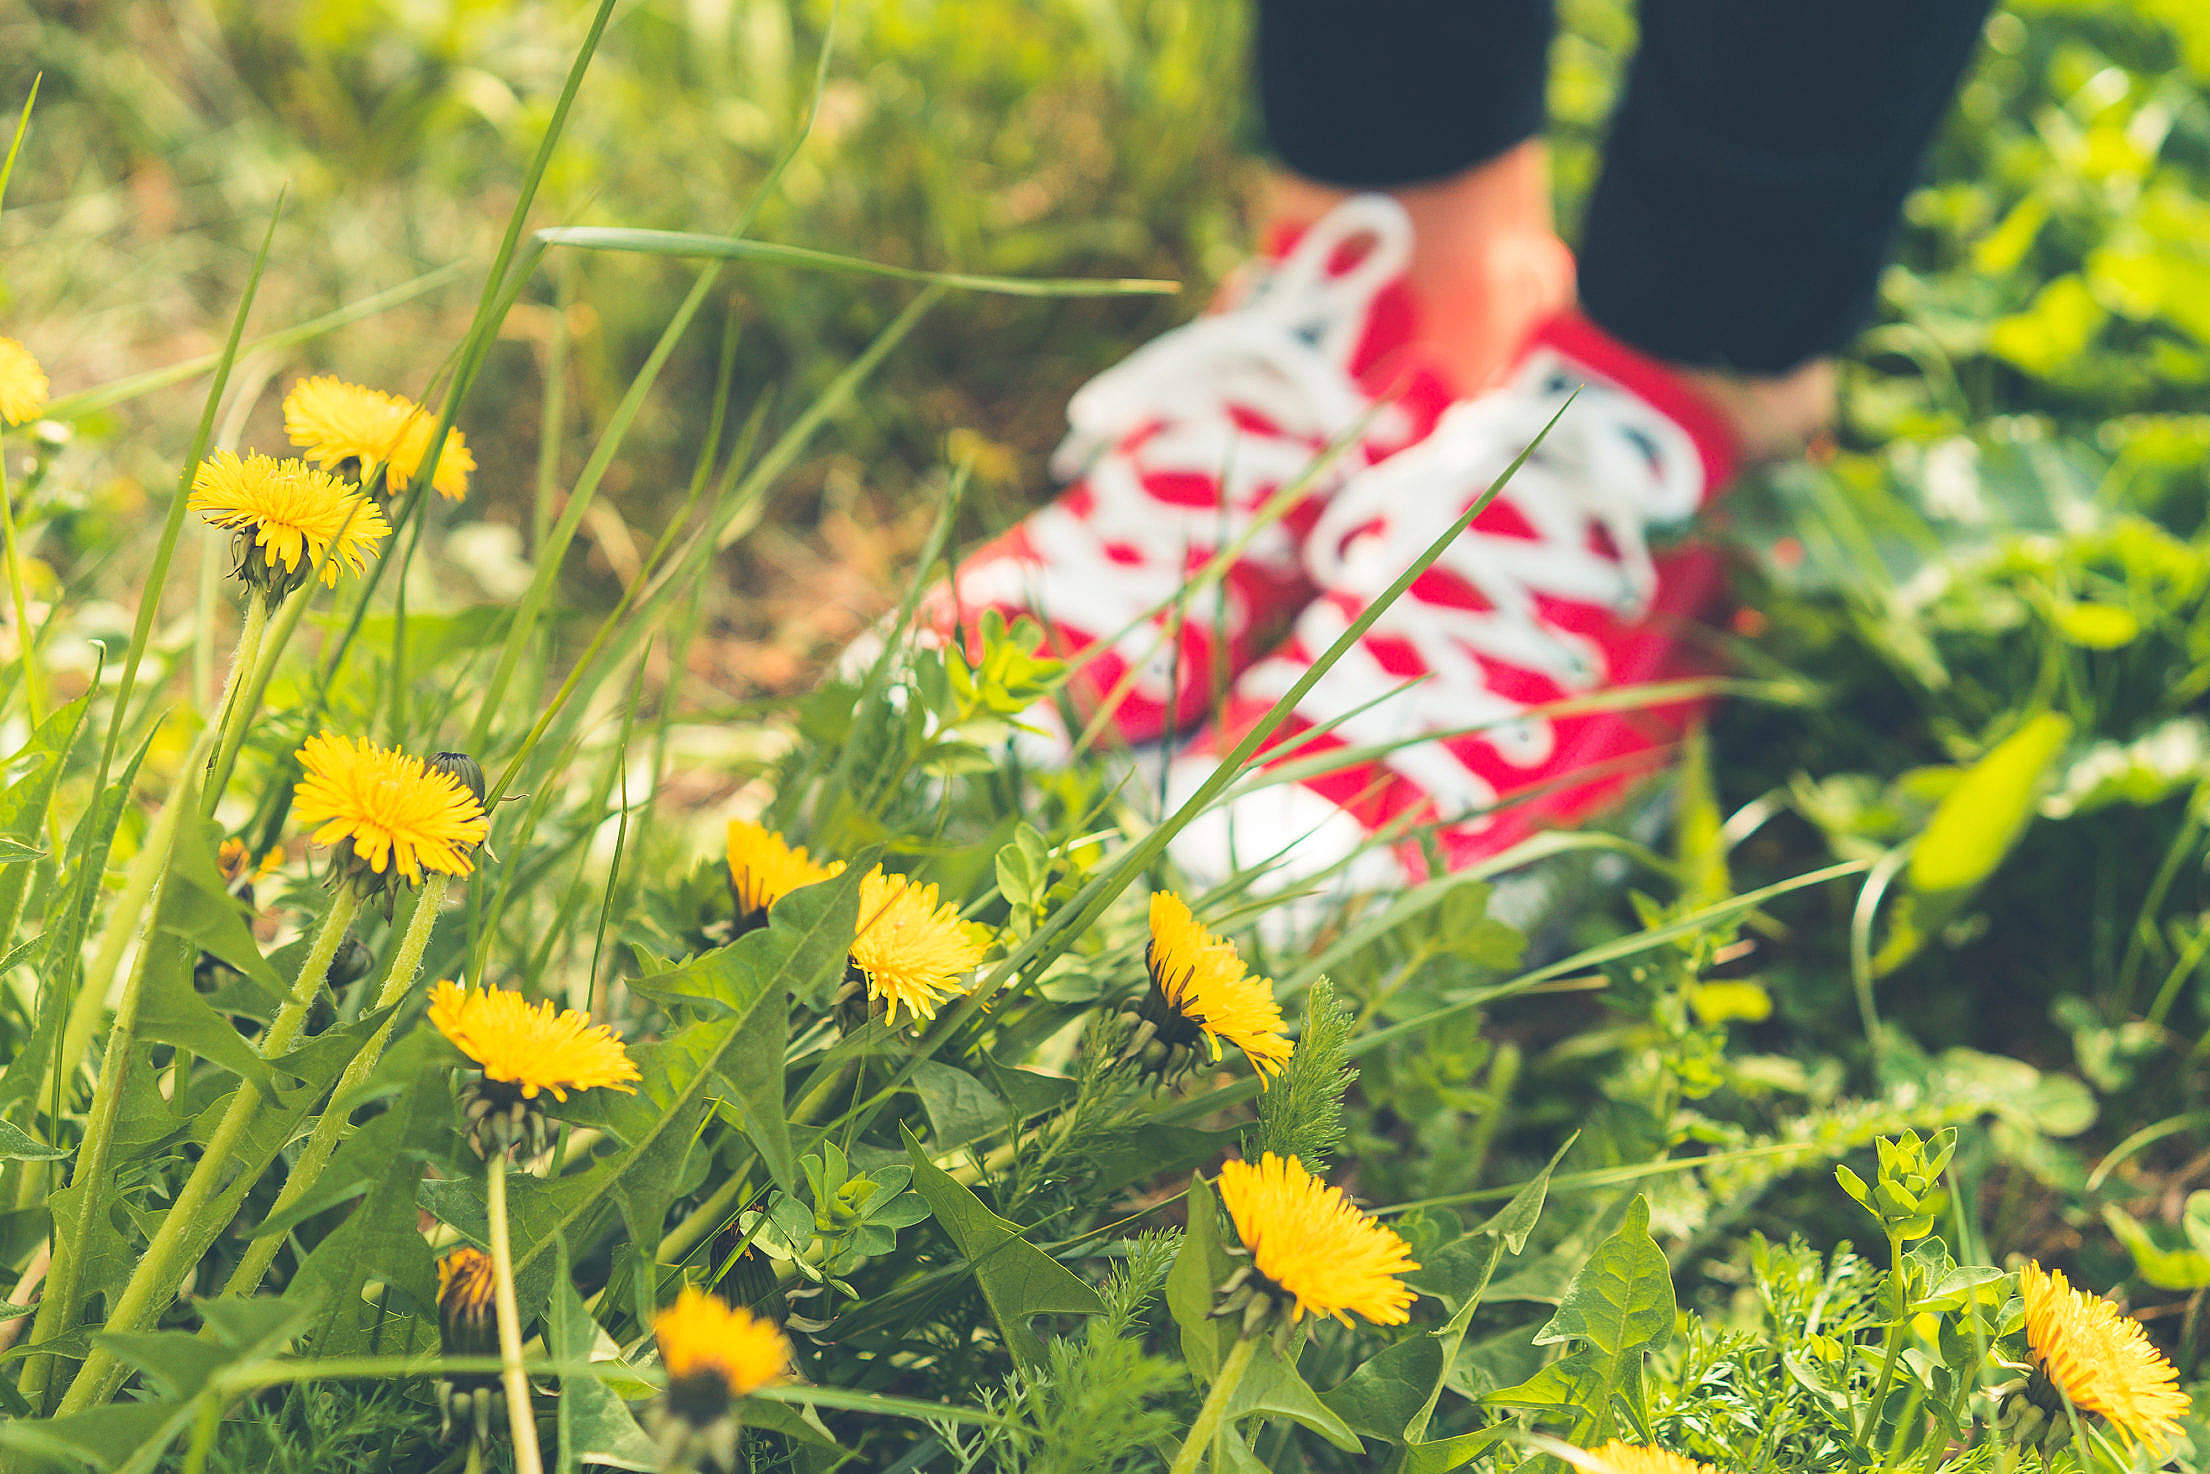 Red Happy Shoes in Grass and Dandelions Free Stock Photo